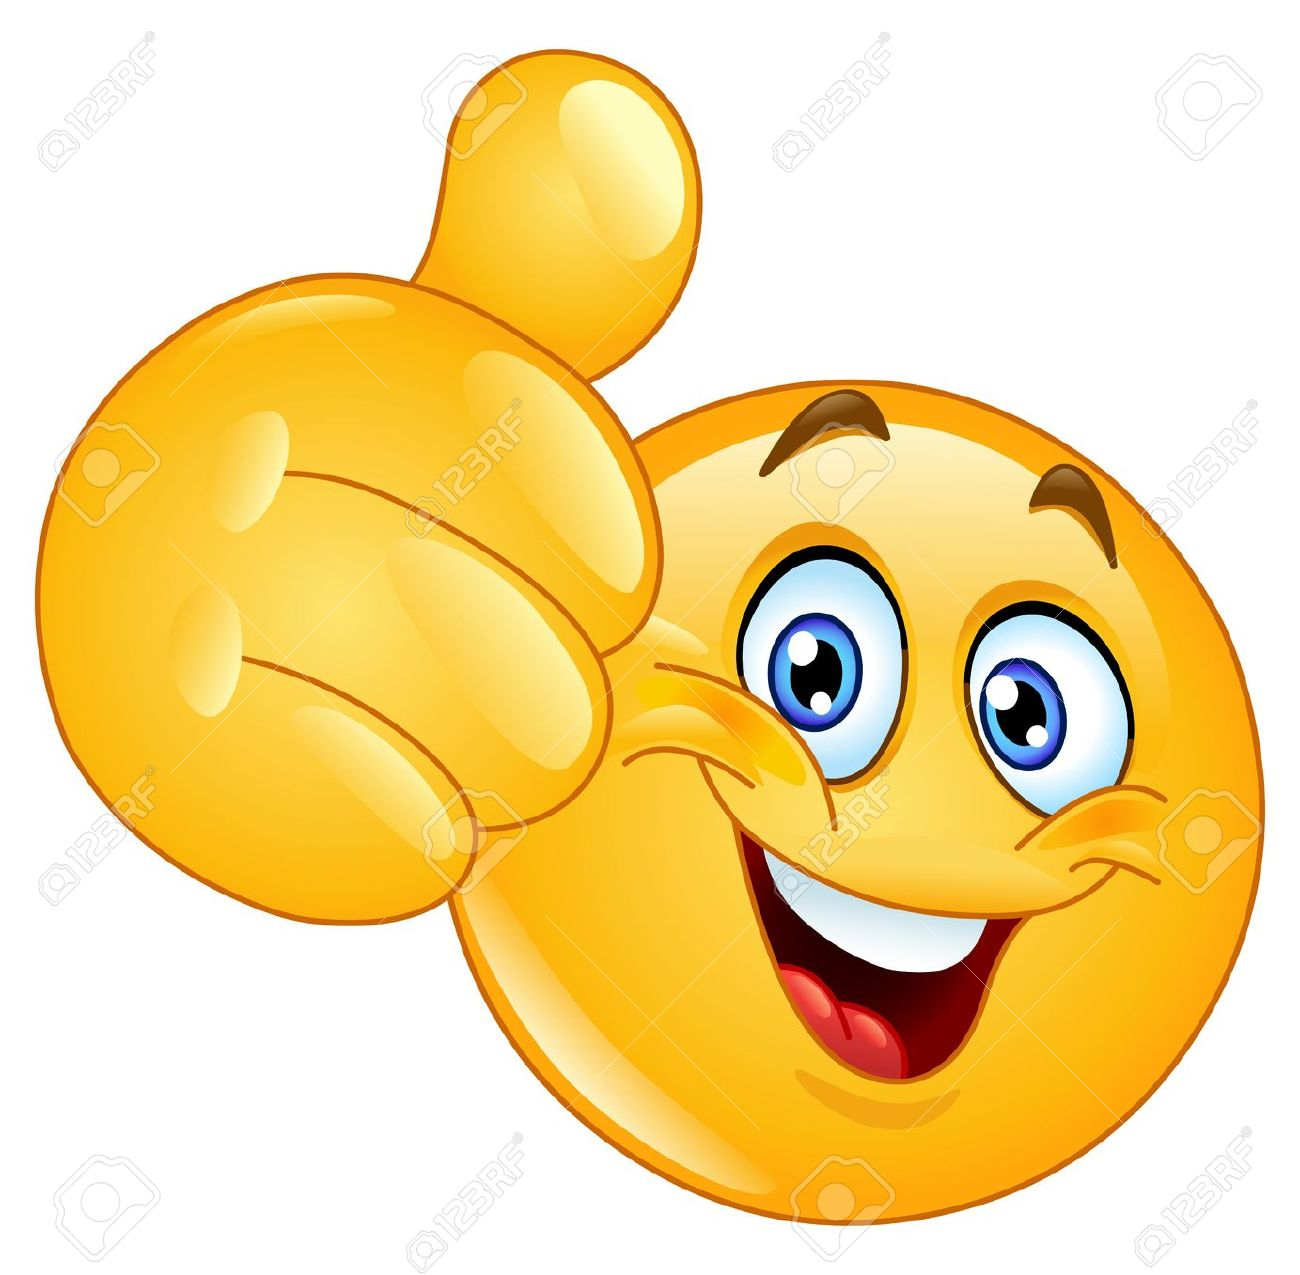 You can download Thumbsup Smiley Face Hd Images here.Thumbsup.